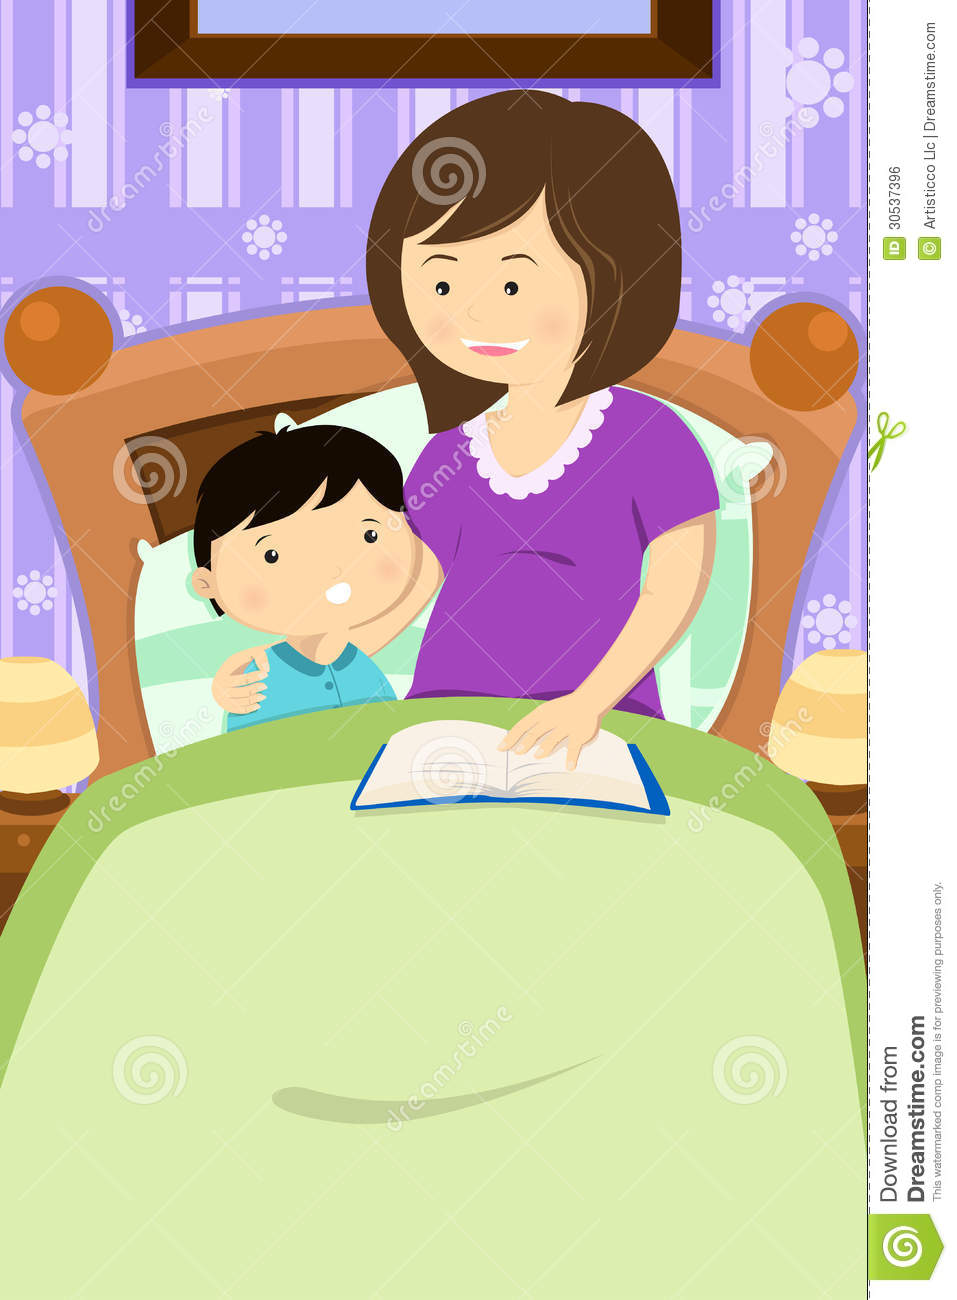 Cliparts gute nacht banner royalty free library Mother Reading A Bedtime Story Royalty Free Stock Image - Image ... banner royalty free library